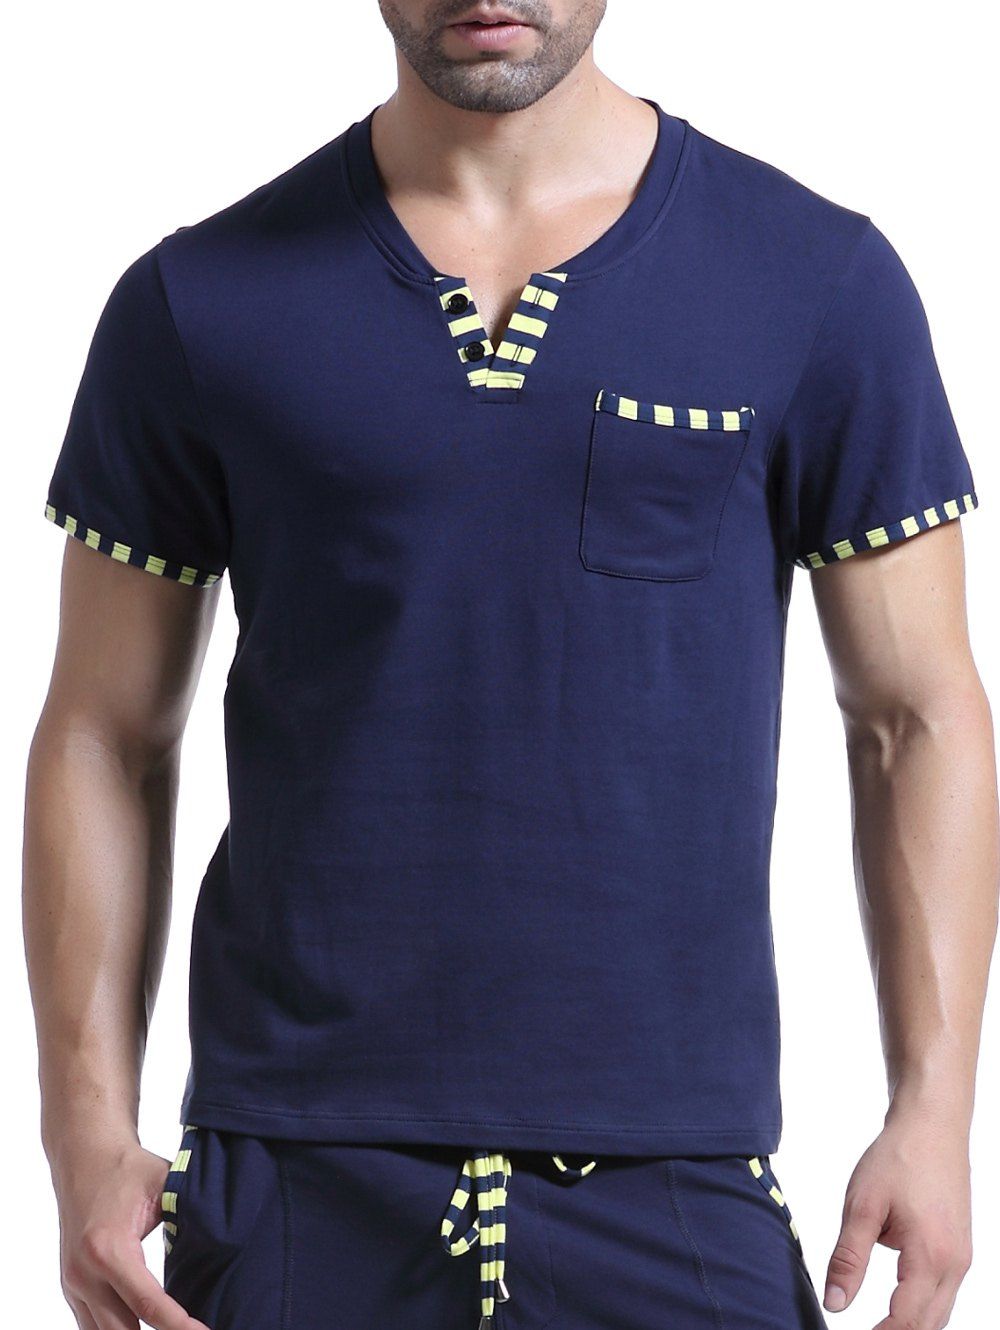 Casual V-Neck Striped Printed Short Sleeve Men's T-Shirt - SAPPHIRE BLUE XL